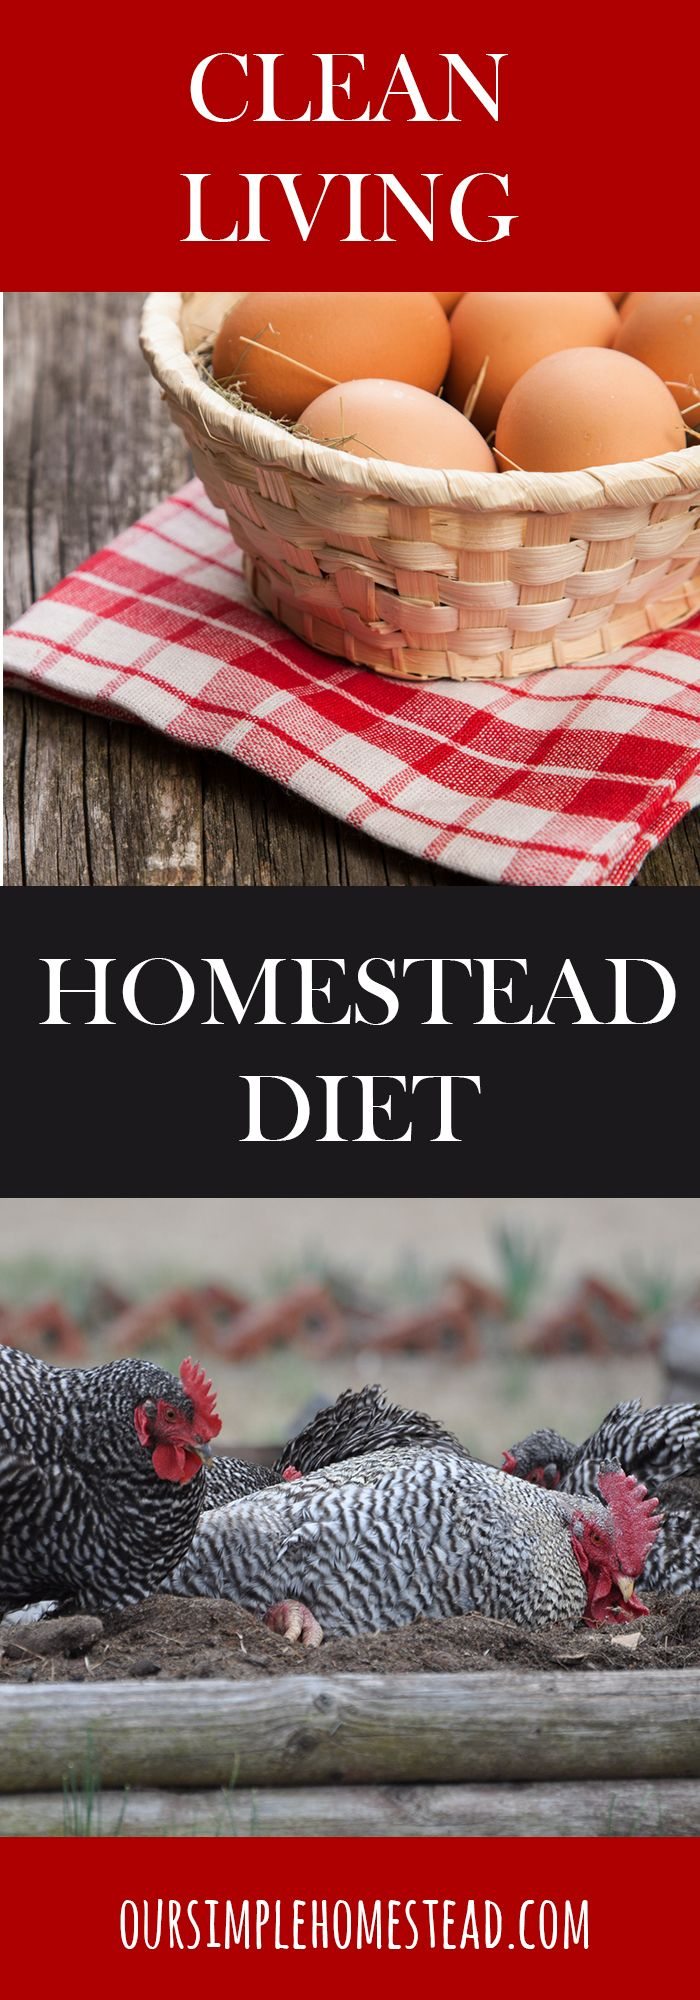 Living Clean - A Homestead Diet - For years I've been told; no-fat, low-fat, low-carb, count calories, low-sugar, high protein, and on and on.  A few years ago I made the decision to stop following all that advice and create a plan to start a healthy clean eating way of life.